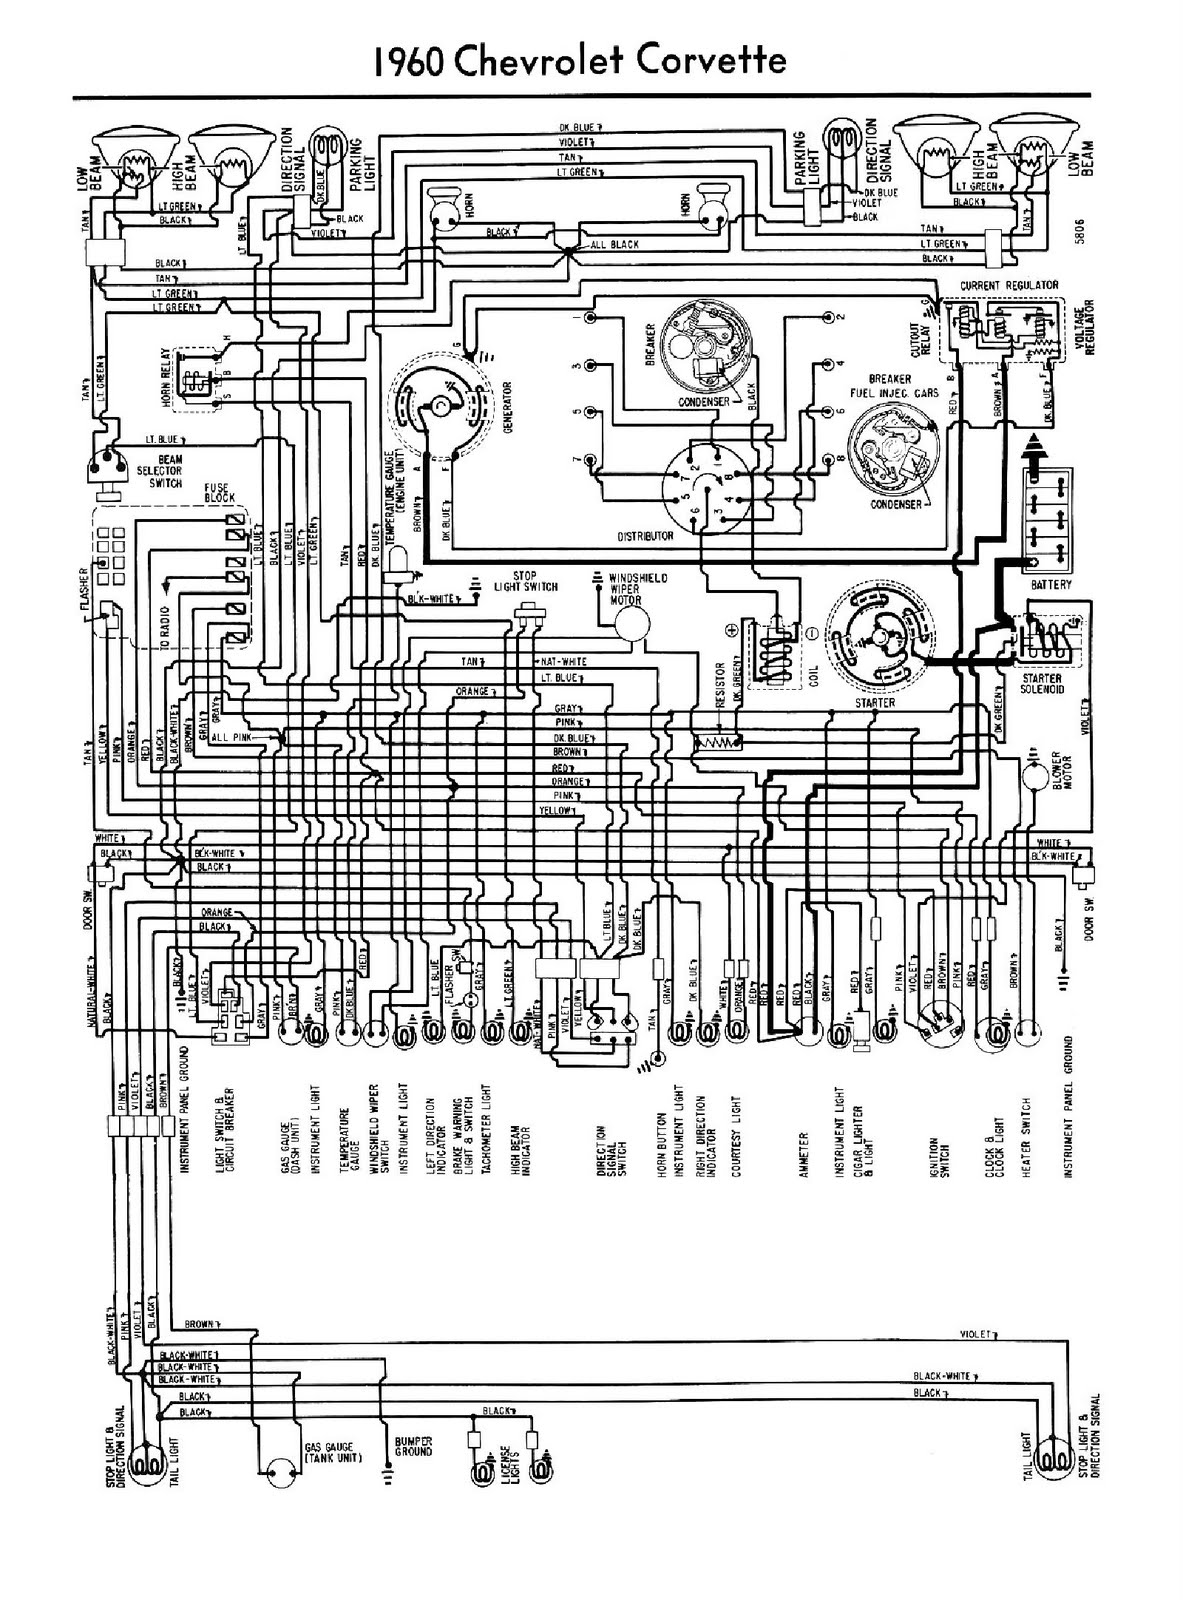 free auto wiring diagram: 1960 chevrolet corvette wiring ... 68 corvette dash wiring diagram free download #6